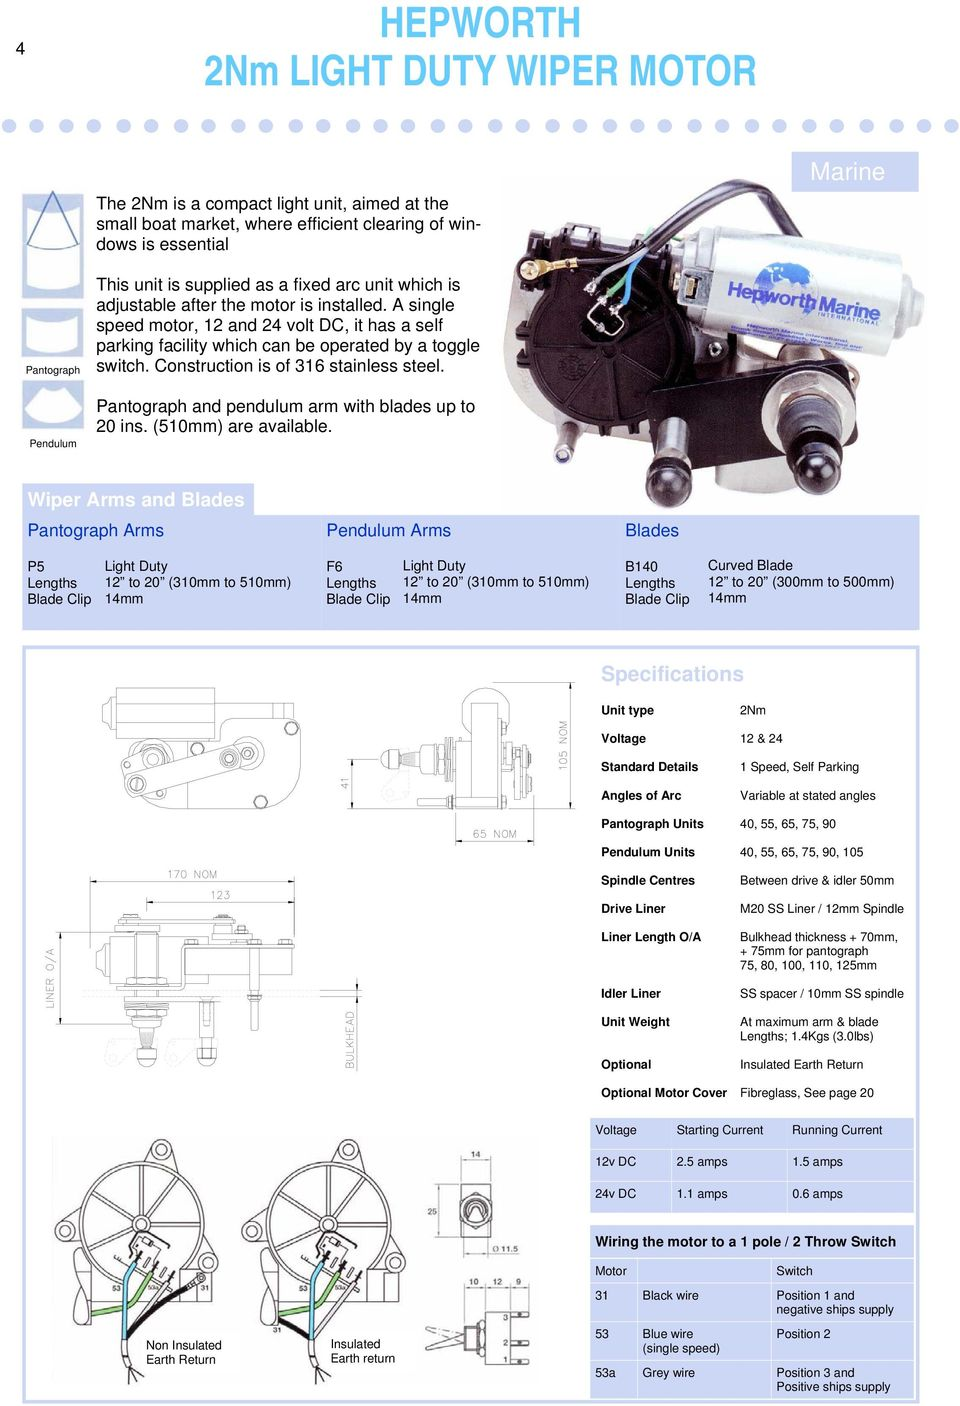 Windscreen Wiper Catalogue Pdf Wiring Of 12 Volt 2speed Steeringcolumnmounted Switch Construction Is 316 Stainless Steel Pantograph And Pendulum Arm With Blades Up To 20